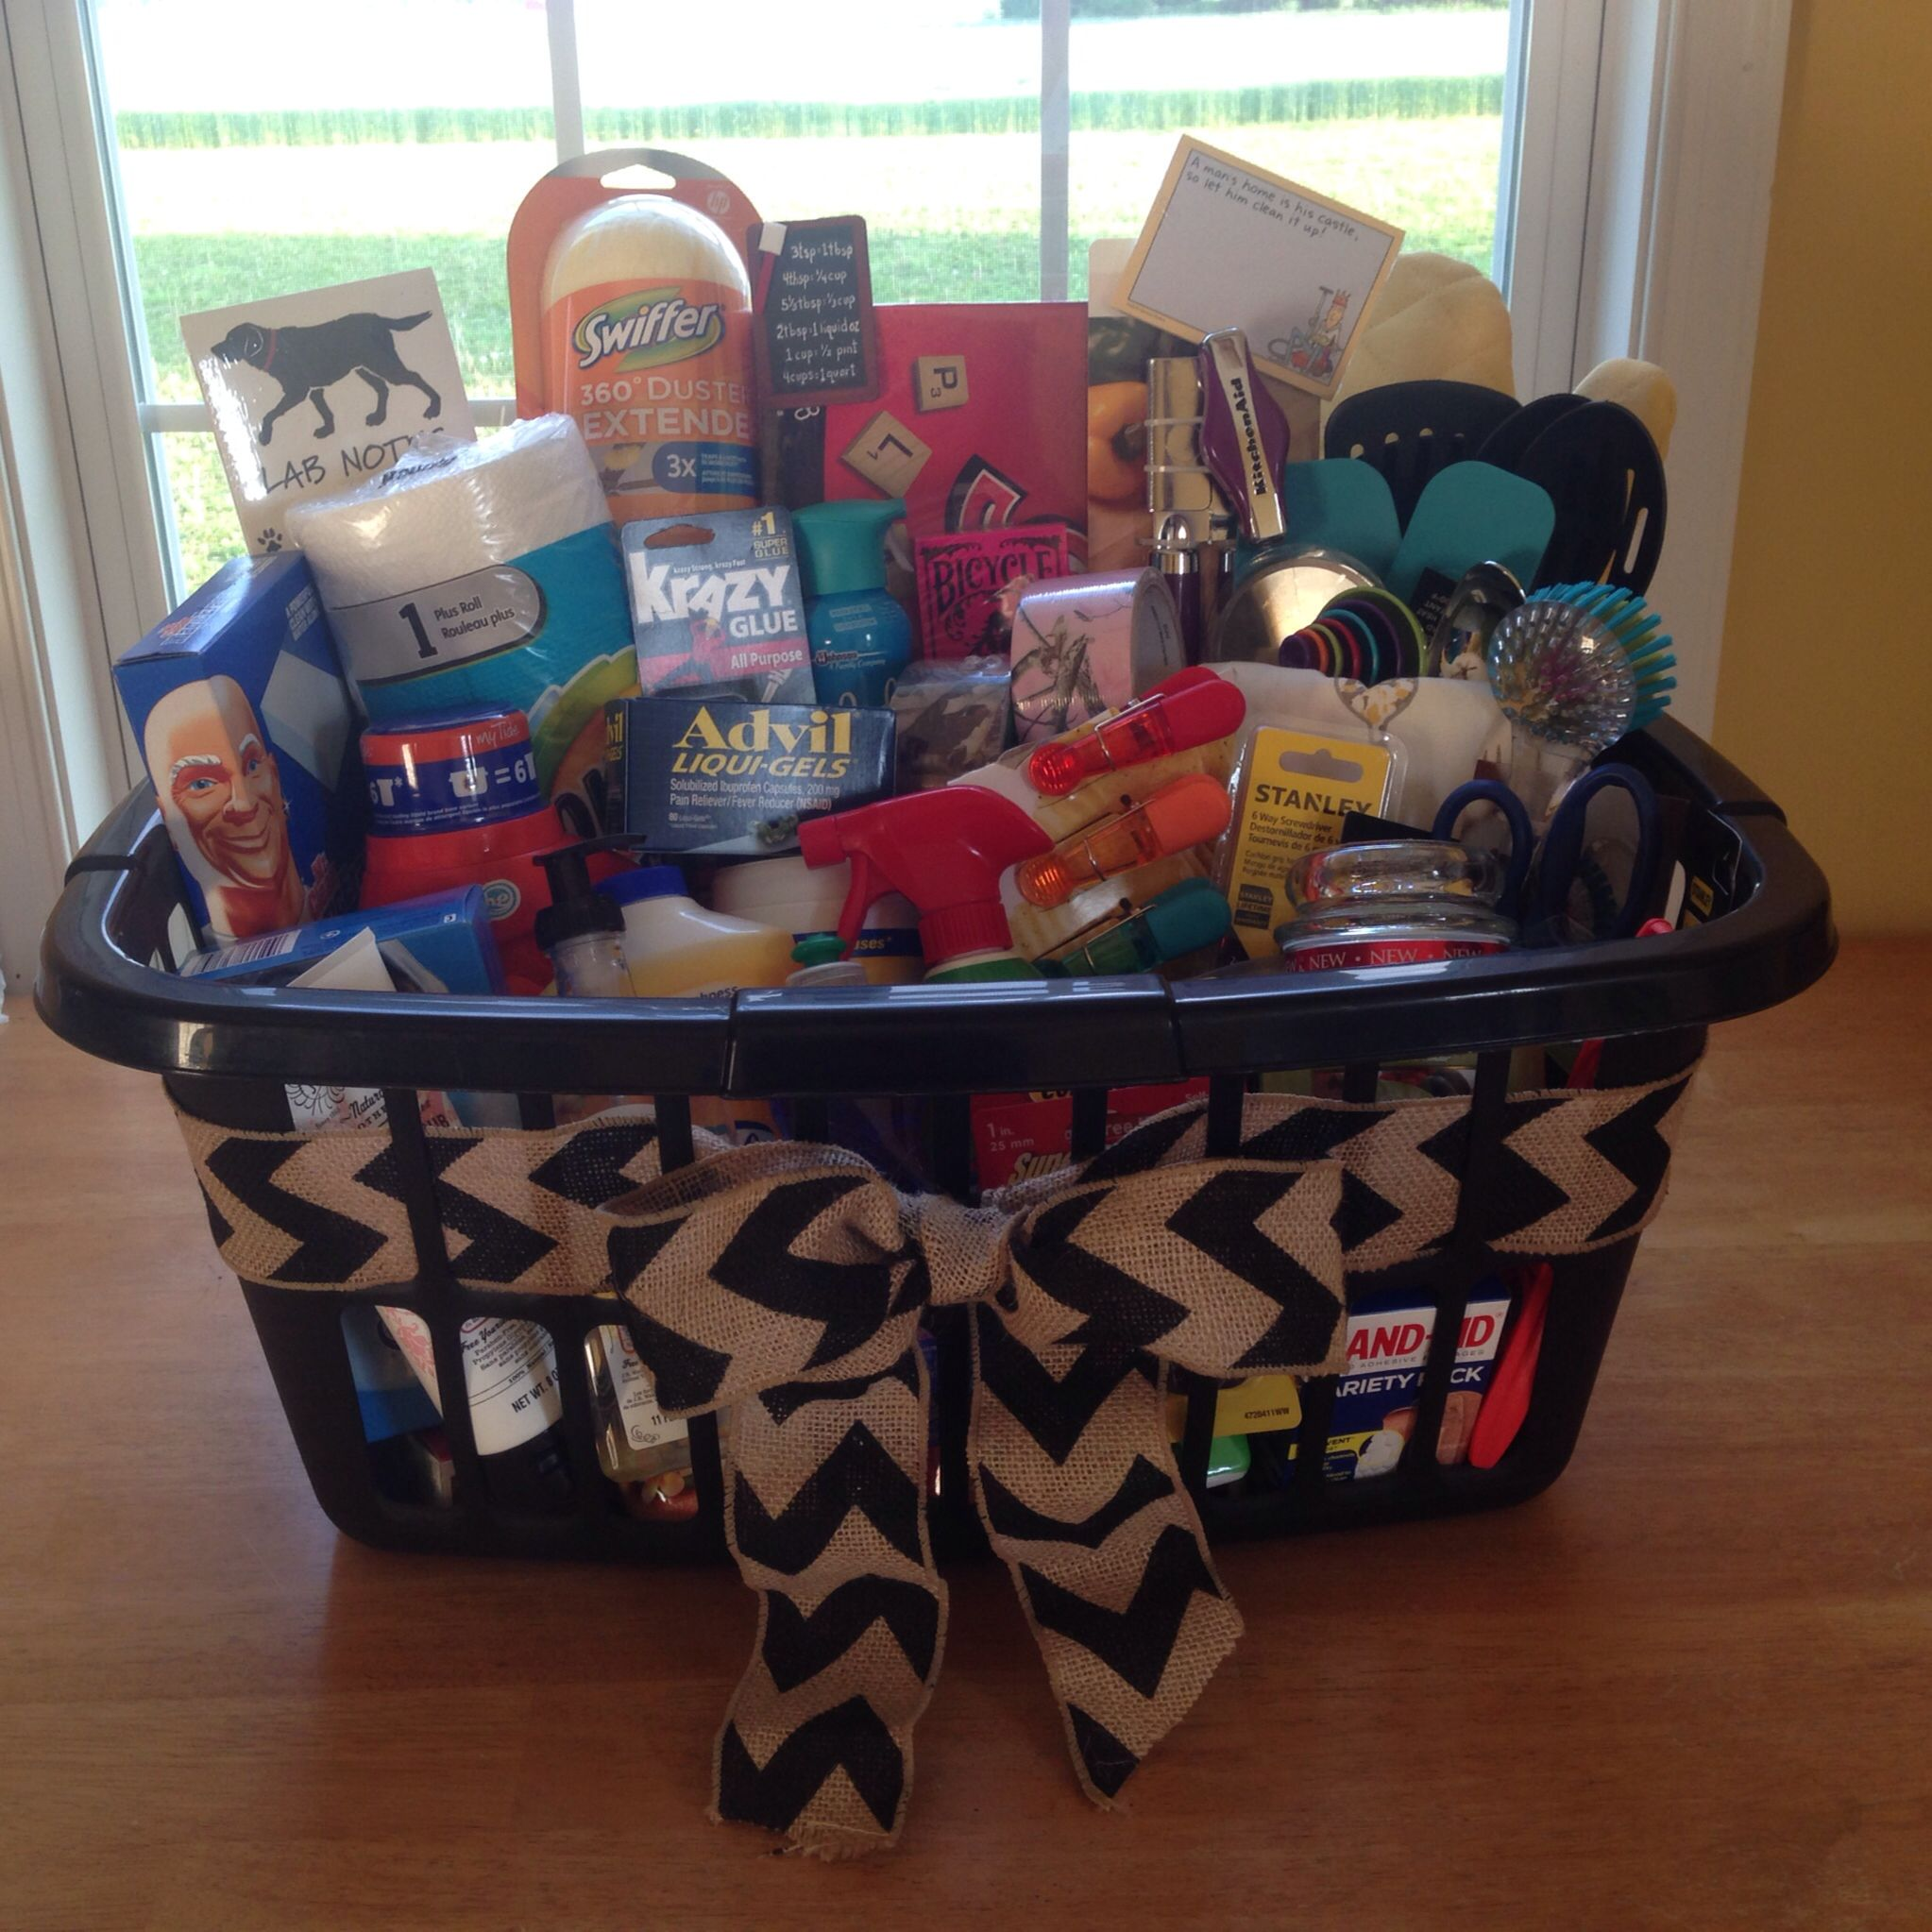 New Home Gifts Gift Baskets Gifts Com: Housewarming Basket For Some Friends Complete With